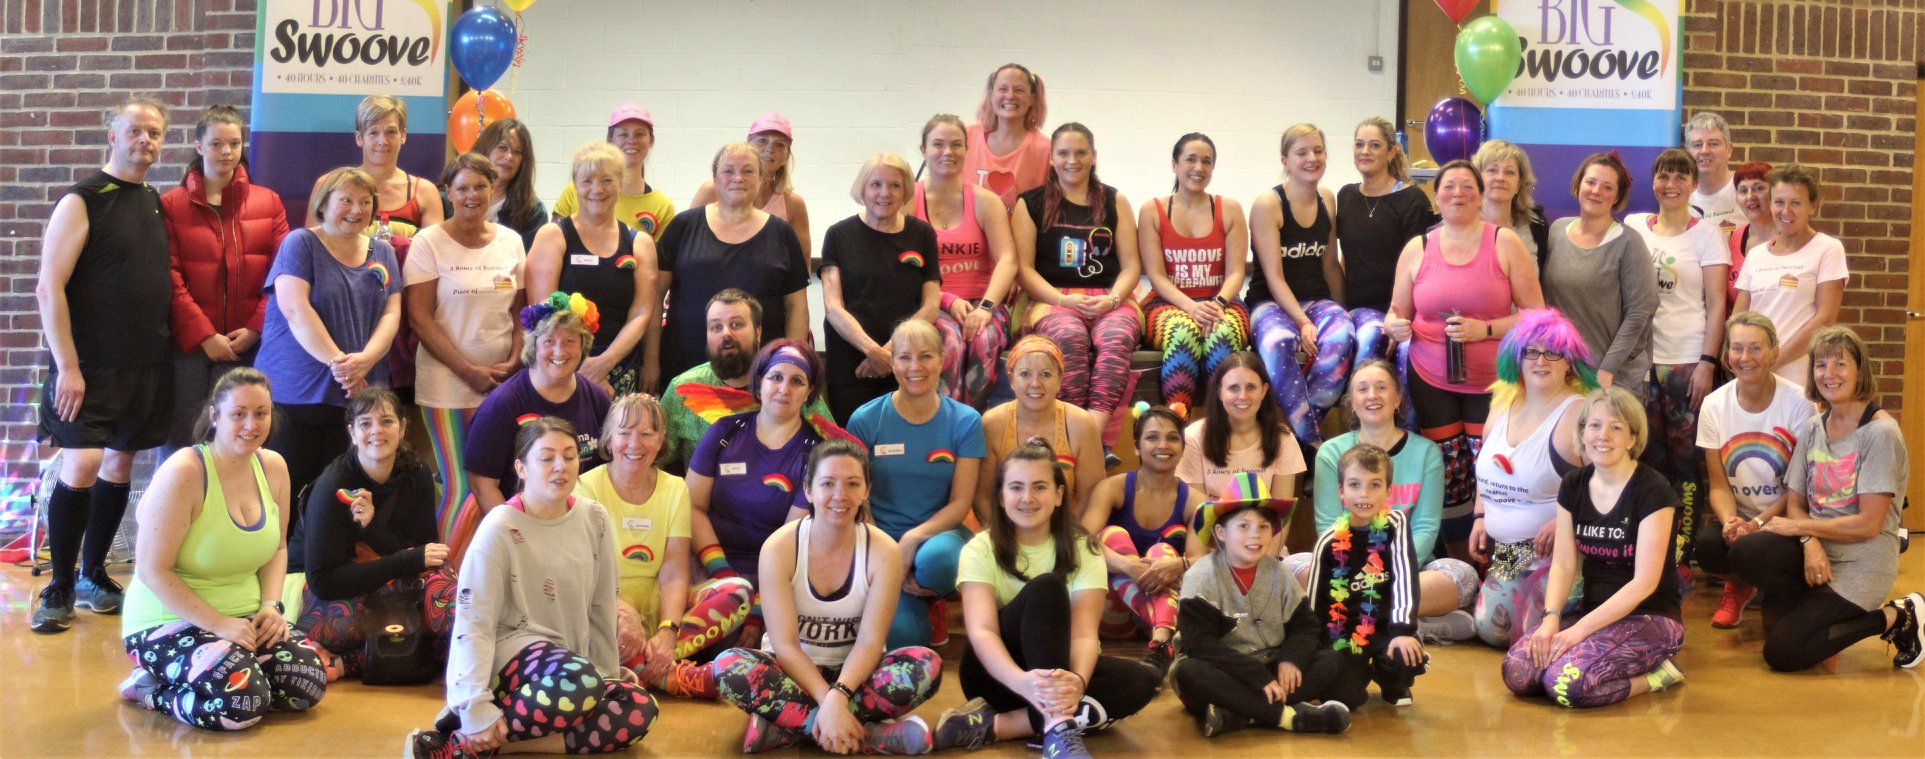 Swoovathon on Sunday 8th March 2020 for 5 local charities